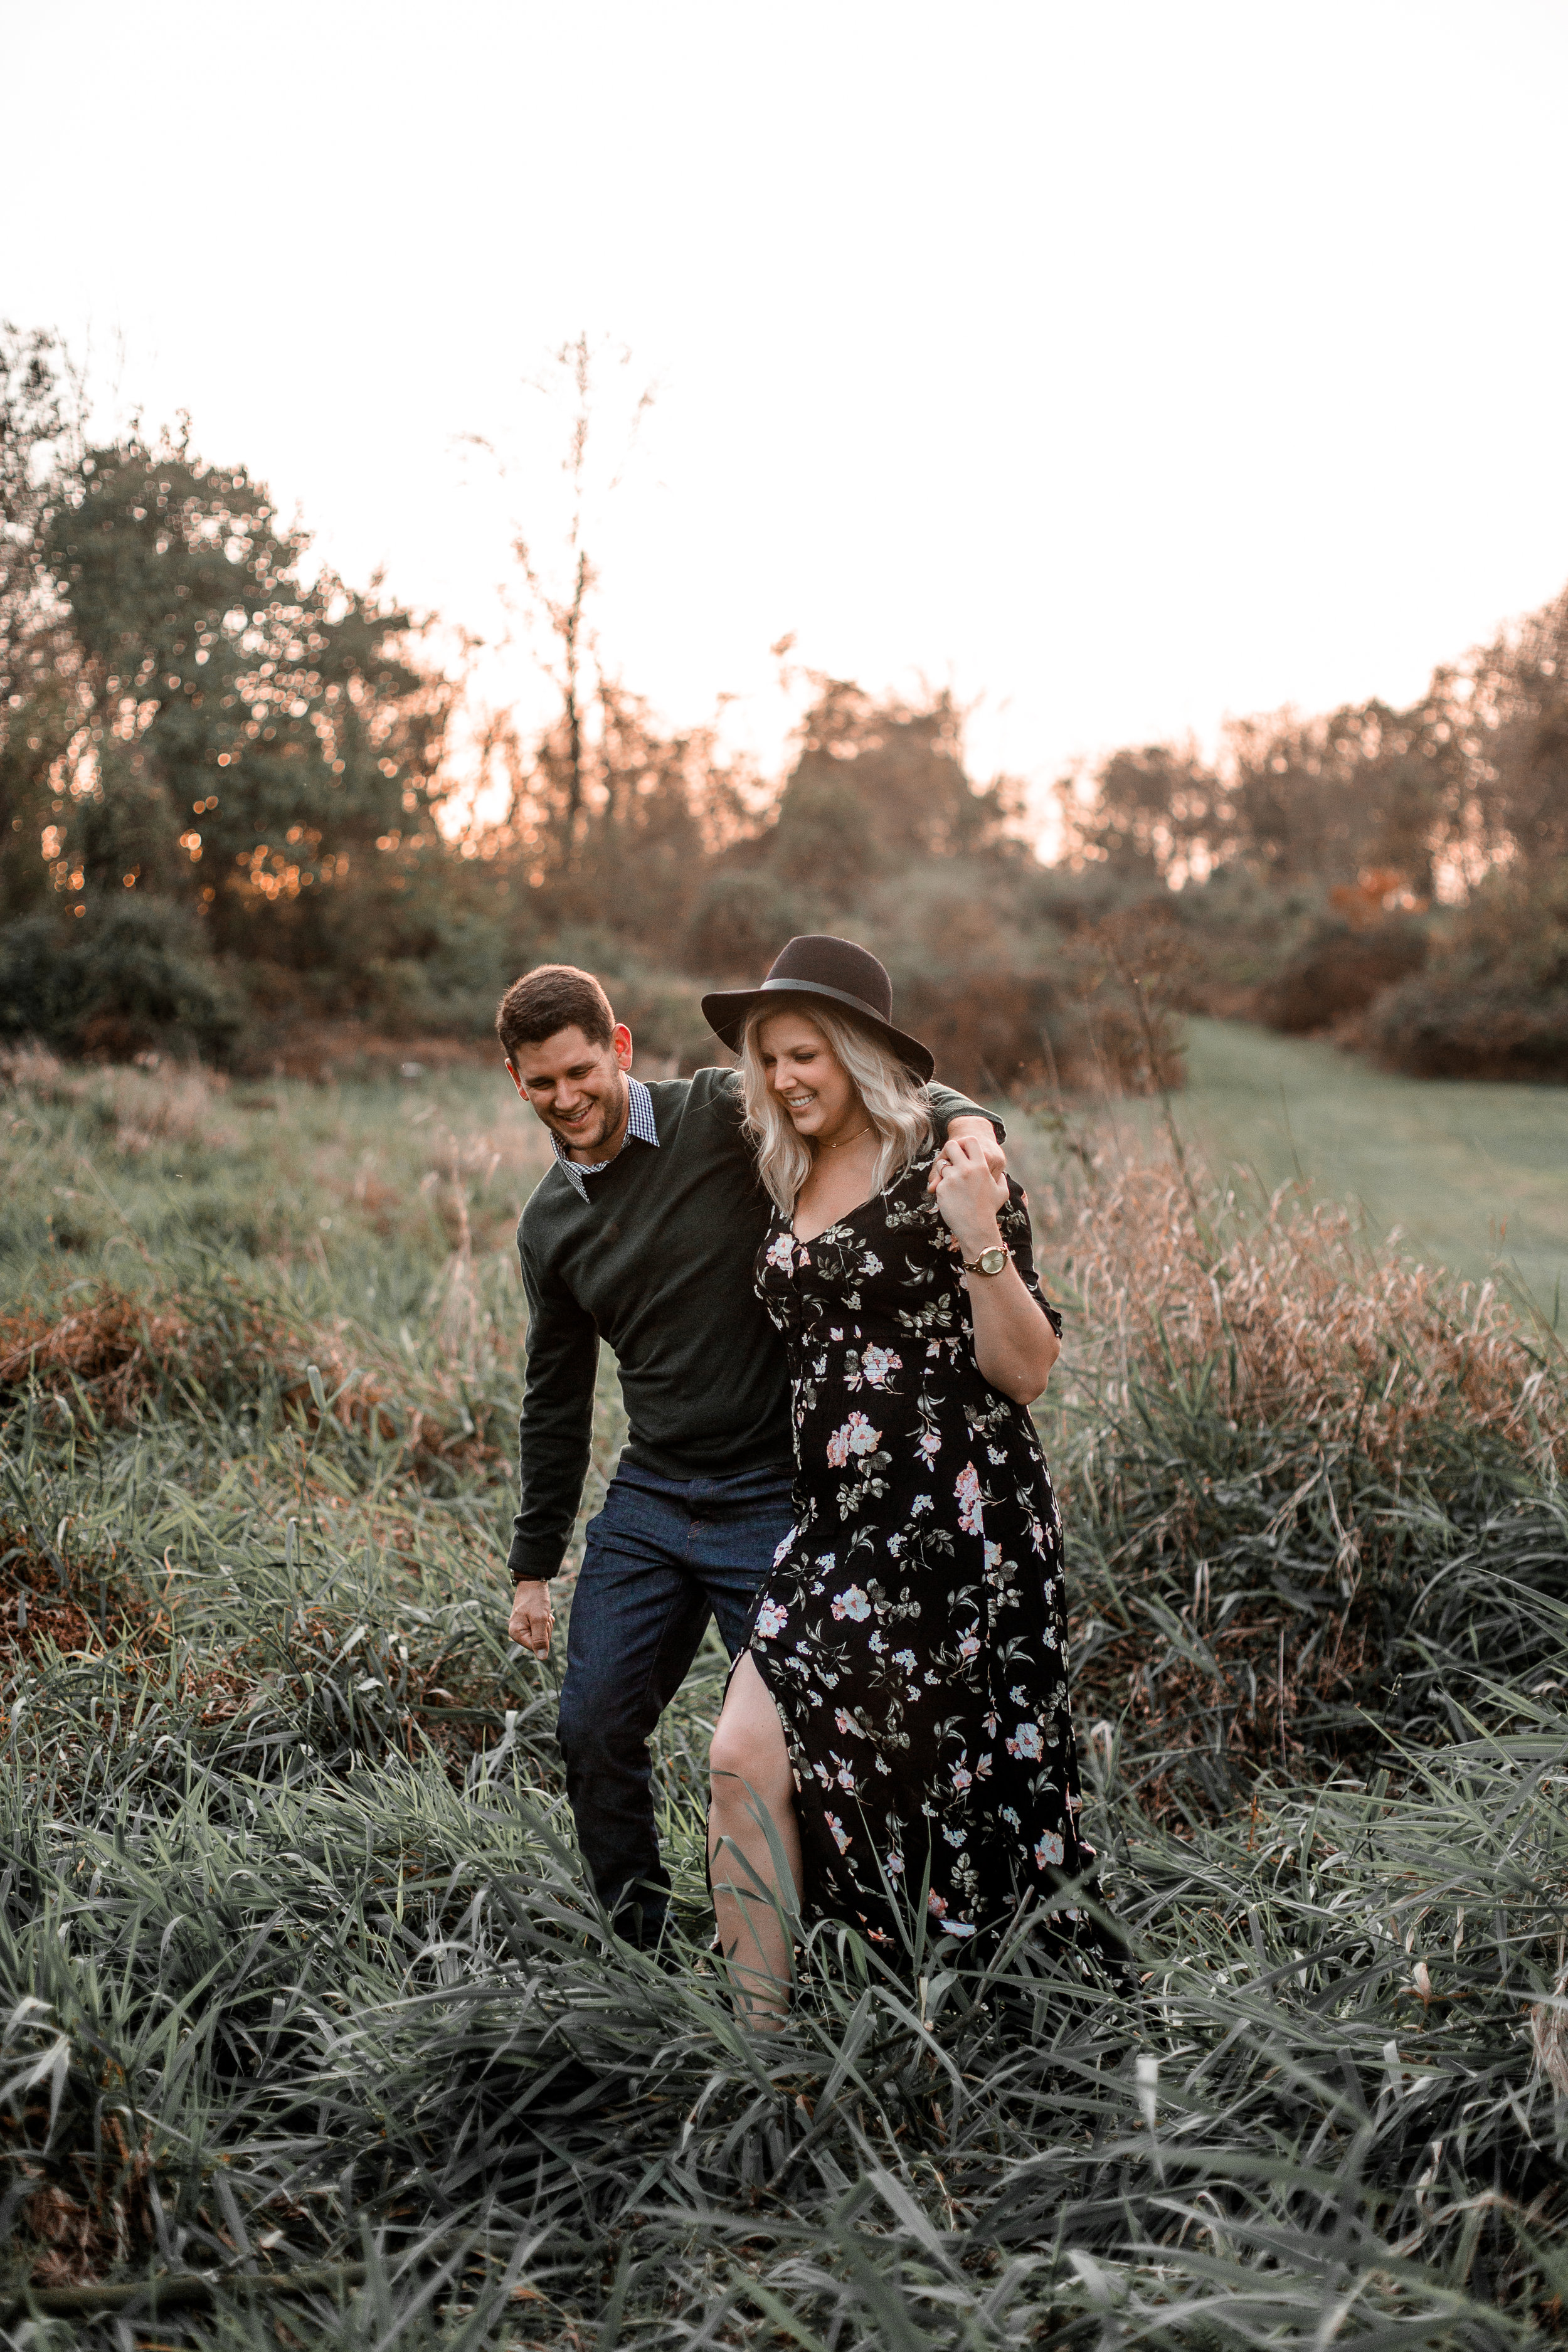 nicole-daacke-photography-carefree-bohemian-lancaster-pa-pennsylvania-engagement-photos-engagement-session-golden-sunset-adventure-session-in-lancaster-pa-lancaster-pa-outdoor-wedding-photographer-27.jpg